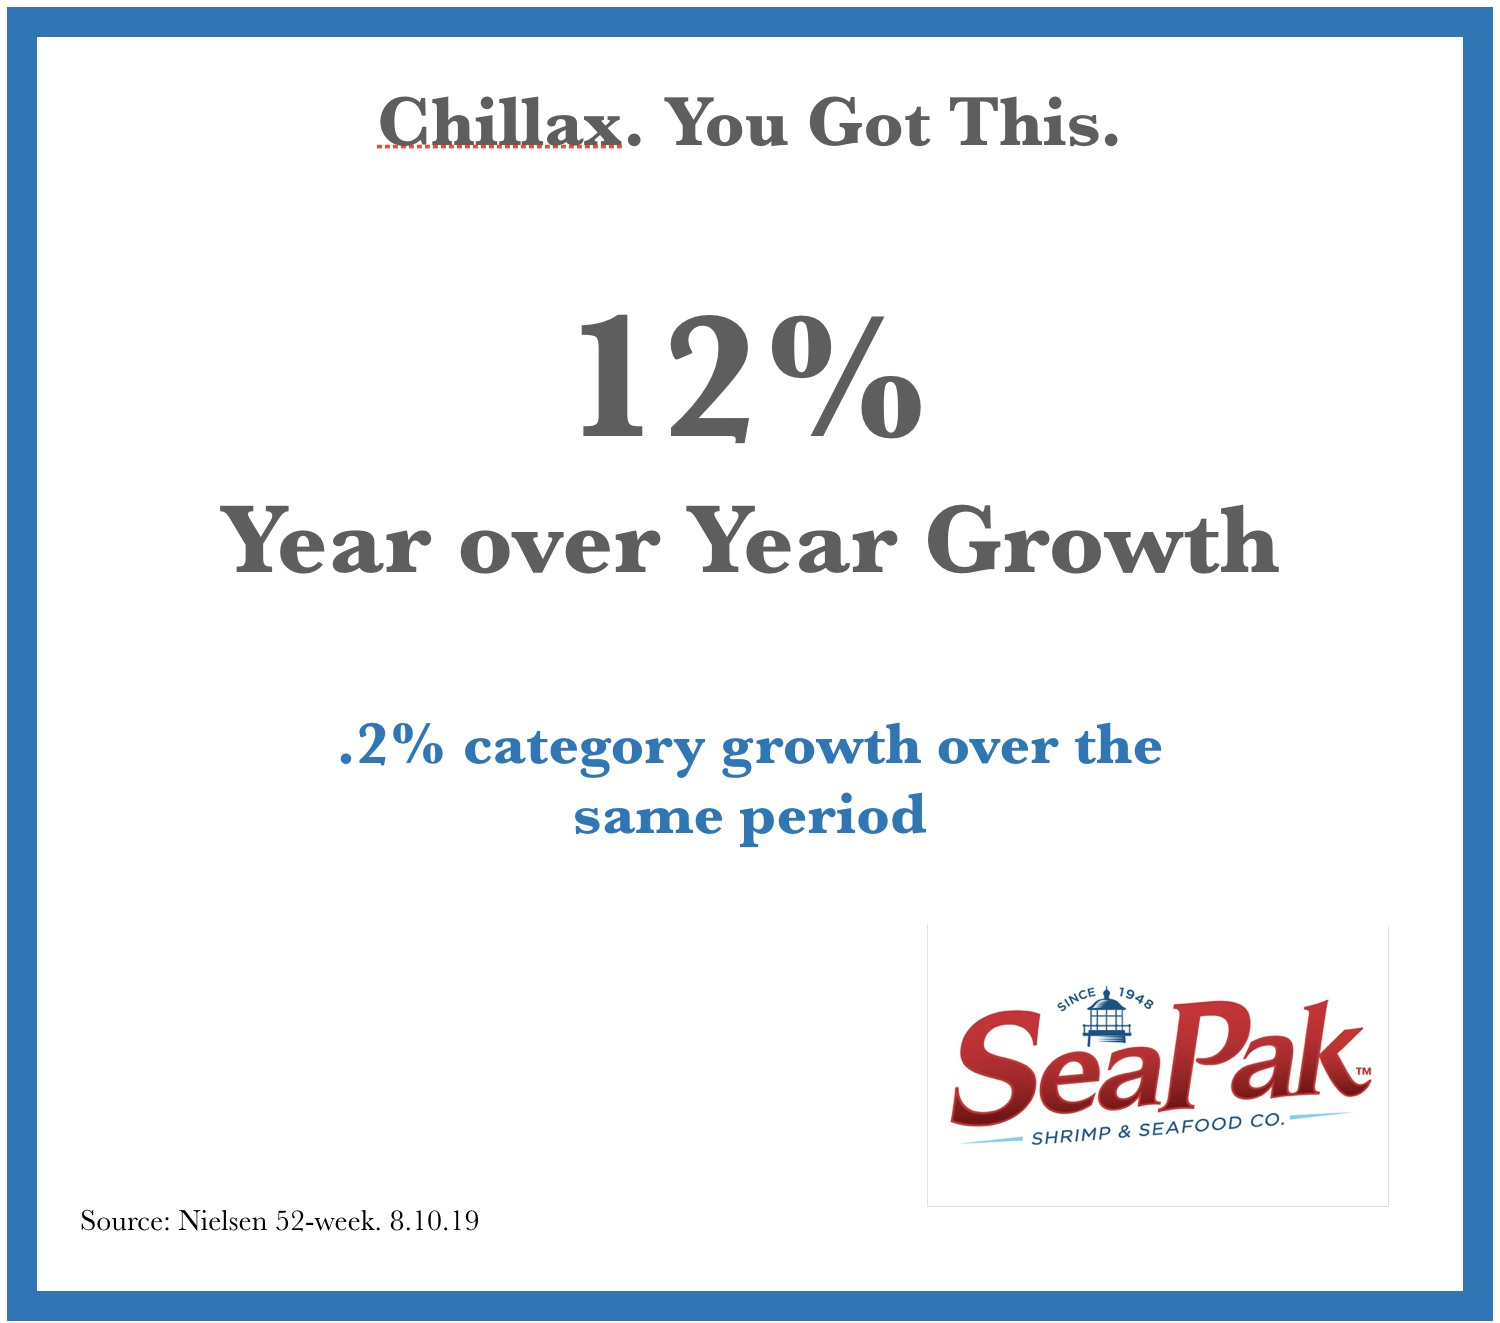 Worked with the brand to achieve the strongest growth in the frozen seafood category.